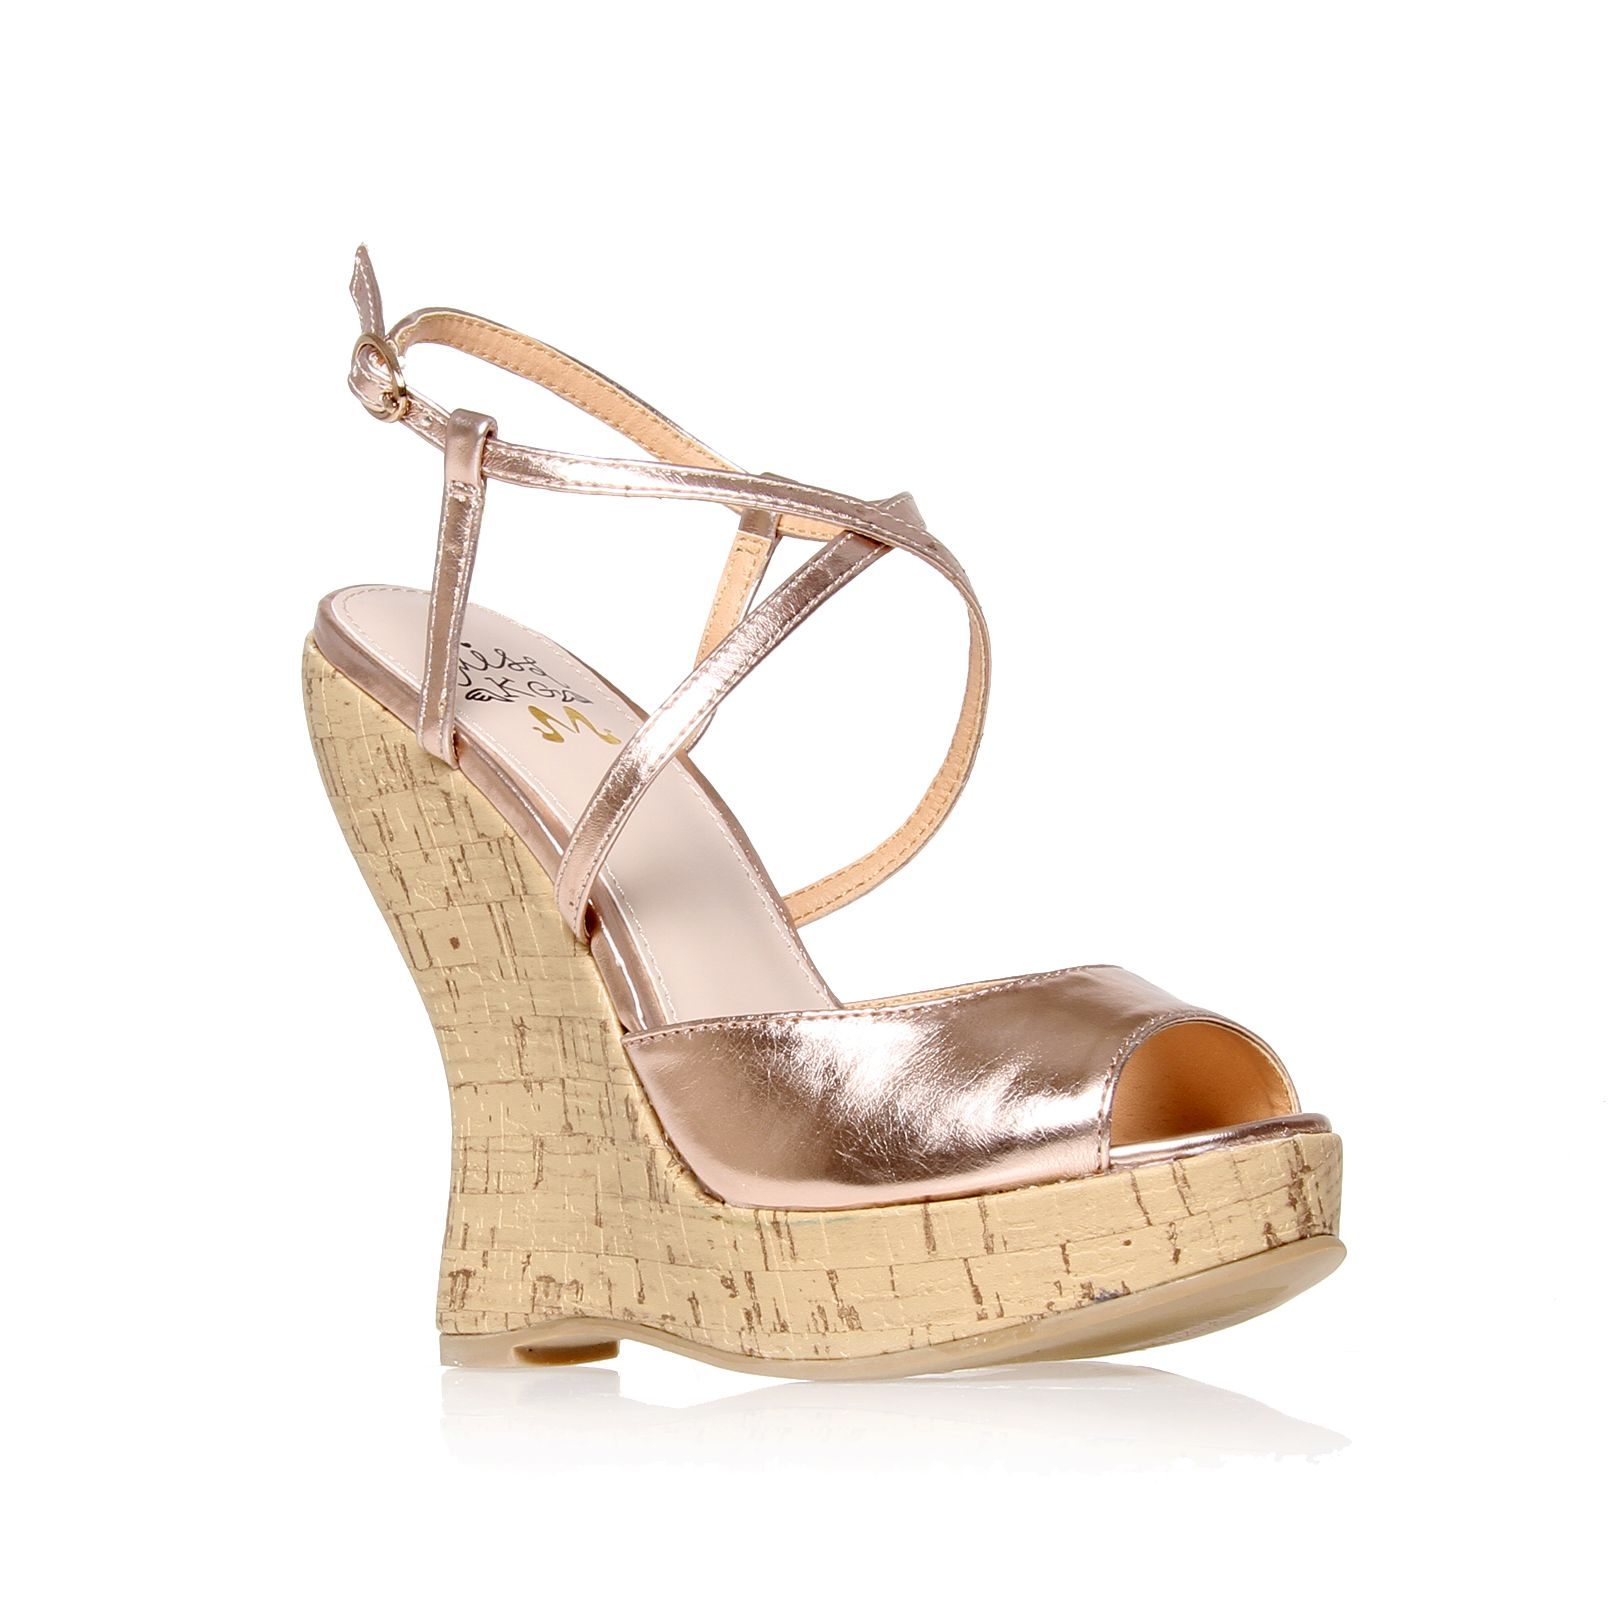 Maldiva wedge court shoes